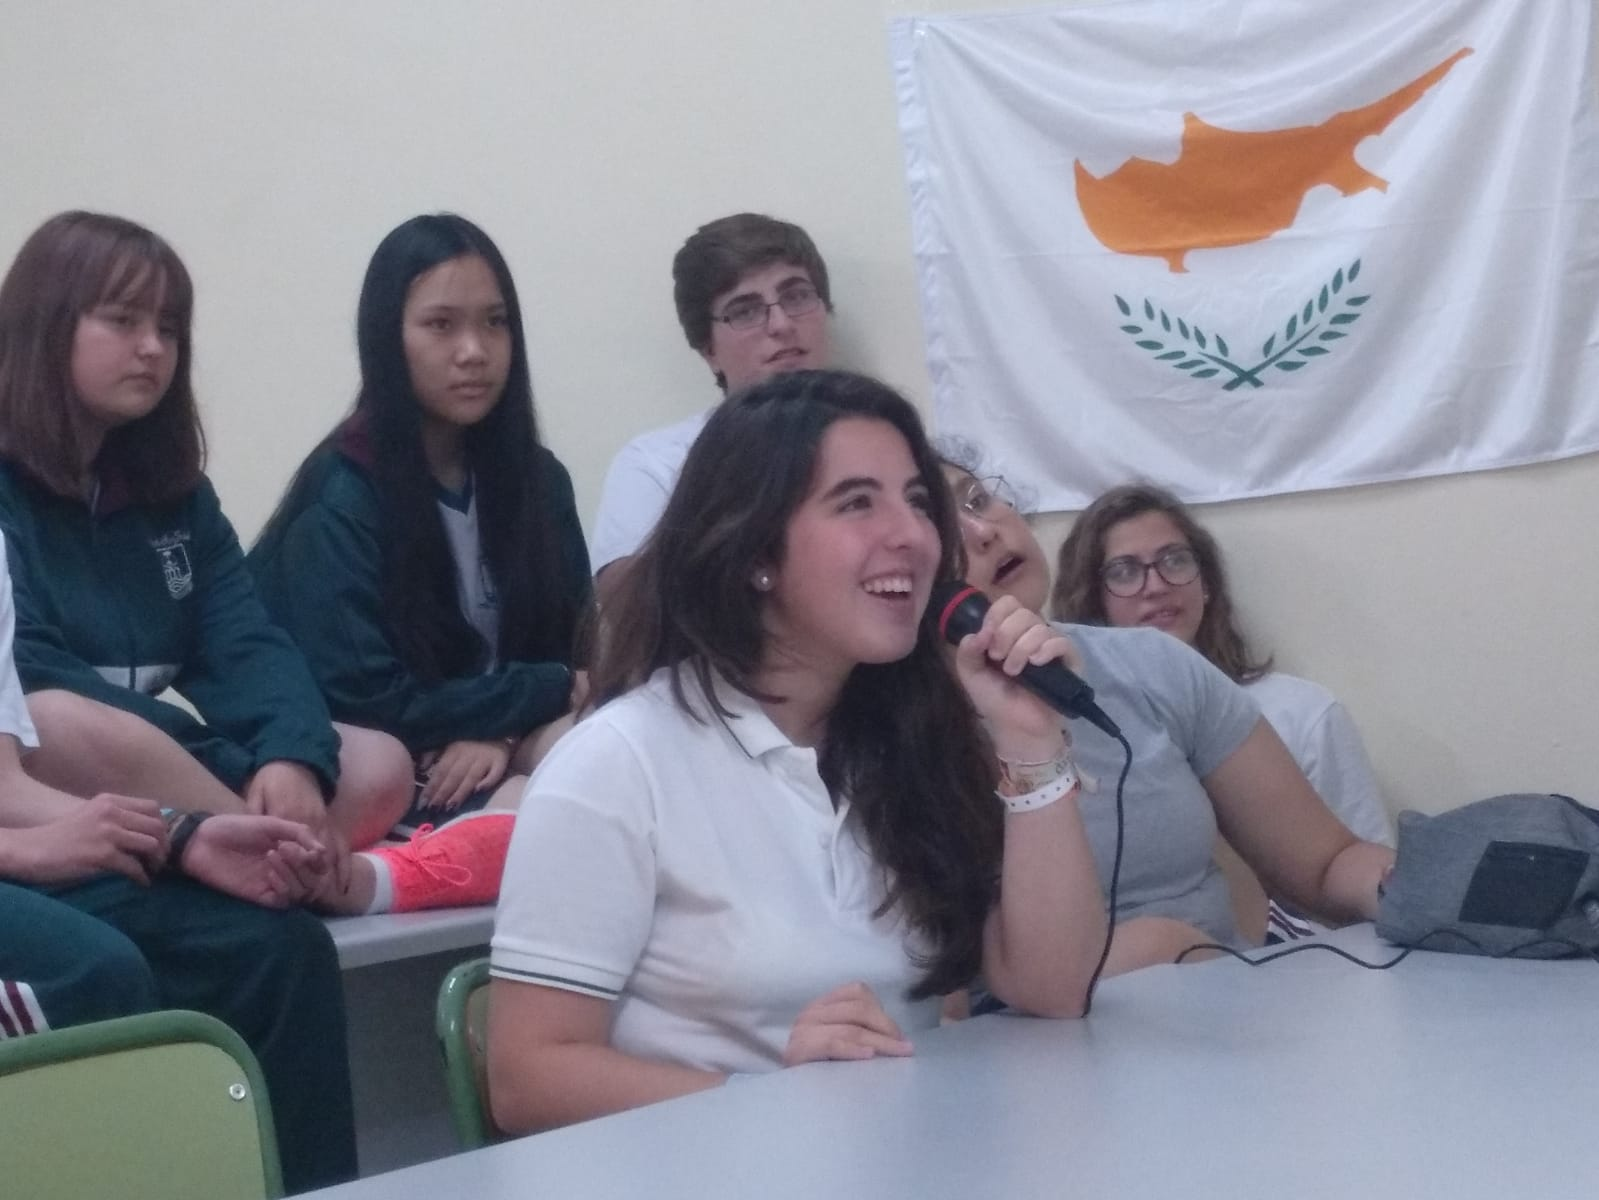 Video Conference between Cyprus and Spain, May 21st, 2019 | CASF